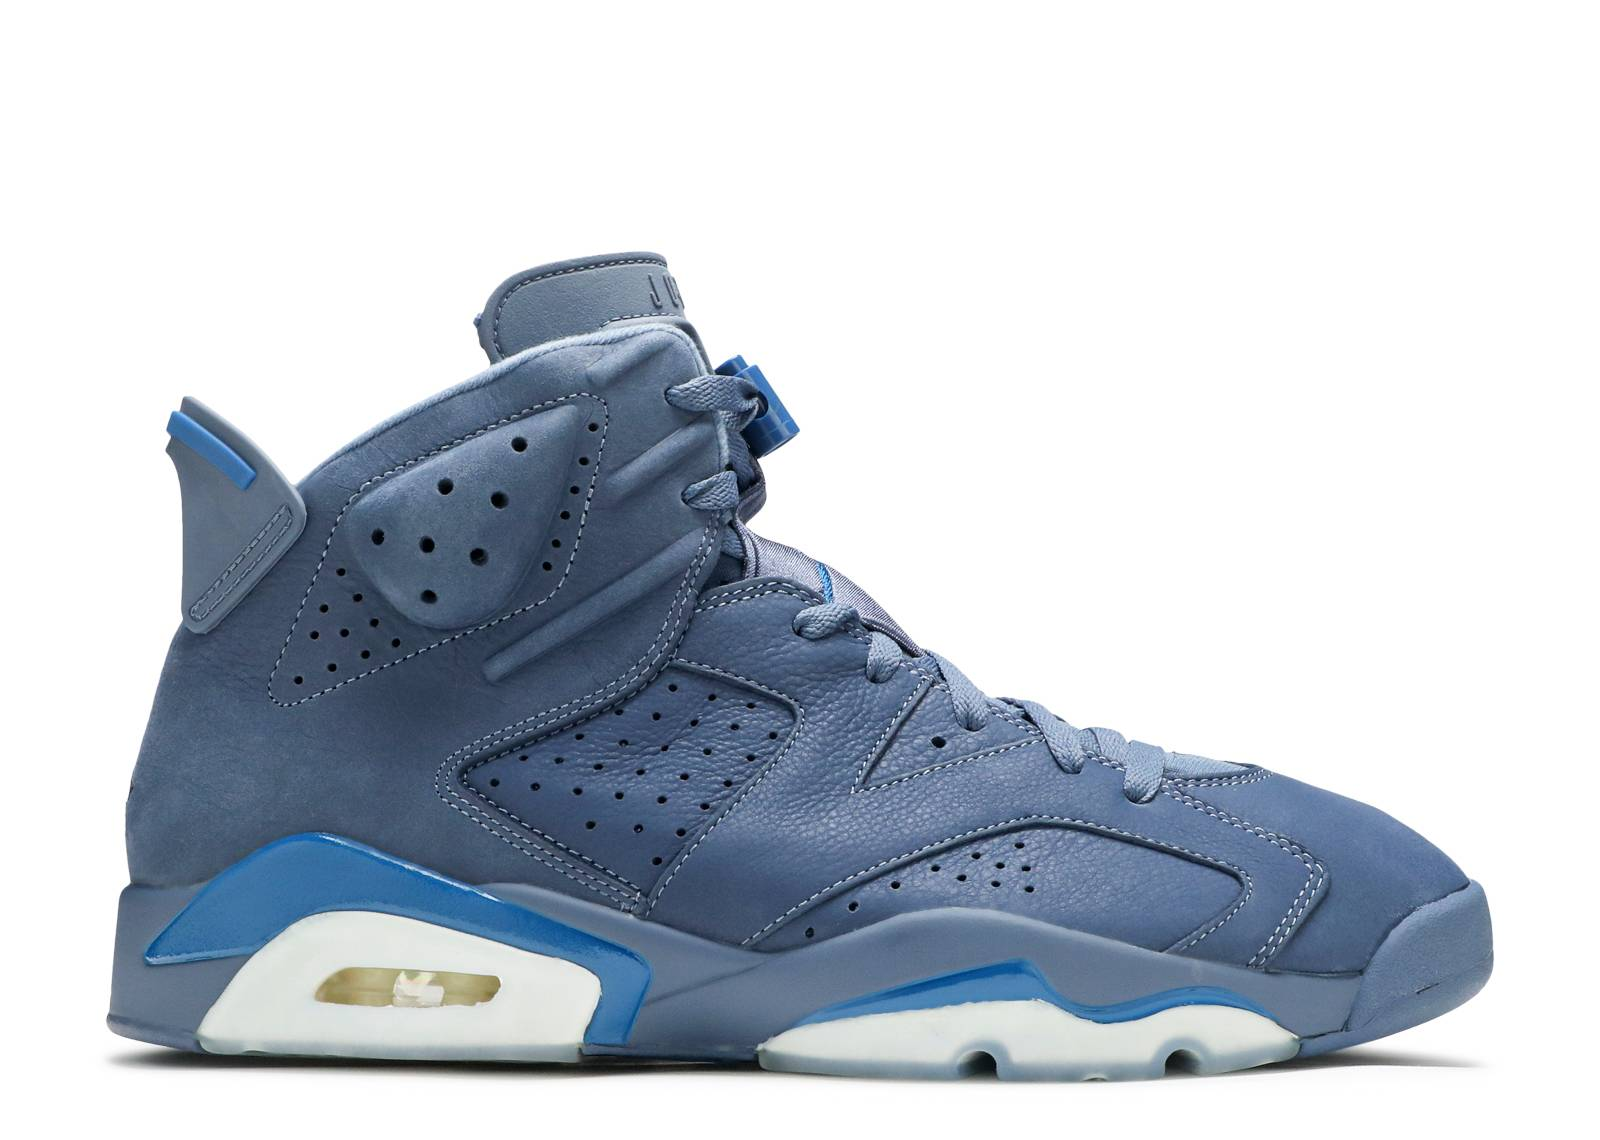 6e1aedefa85737 Air Jordan 6 (VI) Shoes - Nike